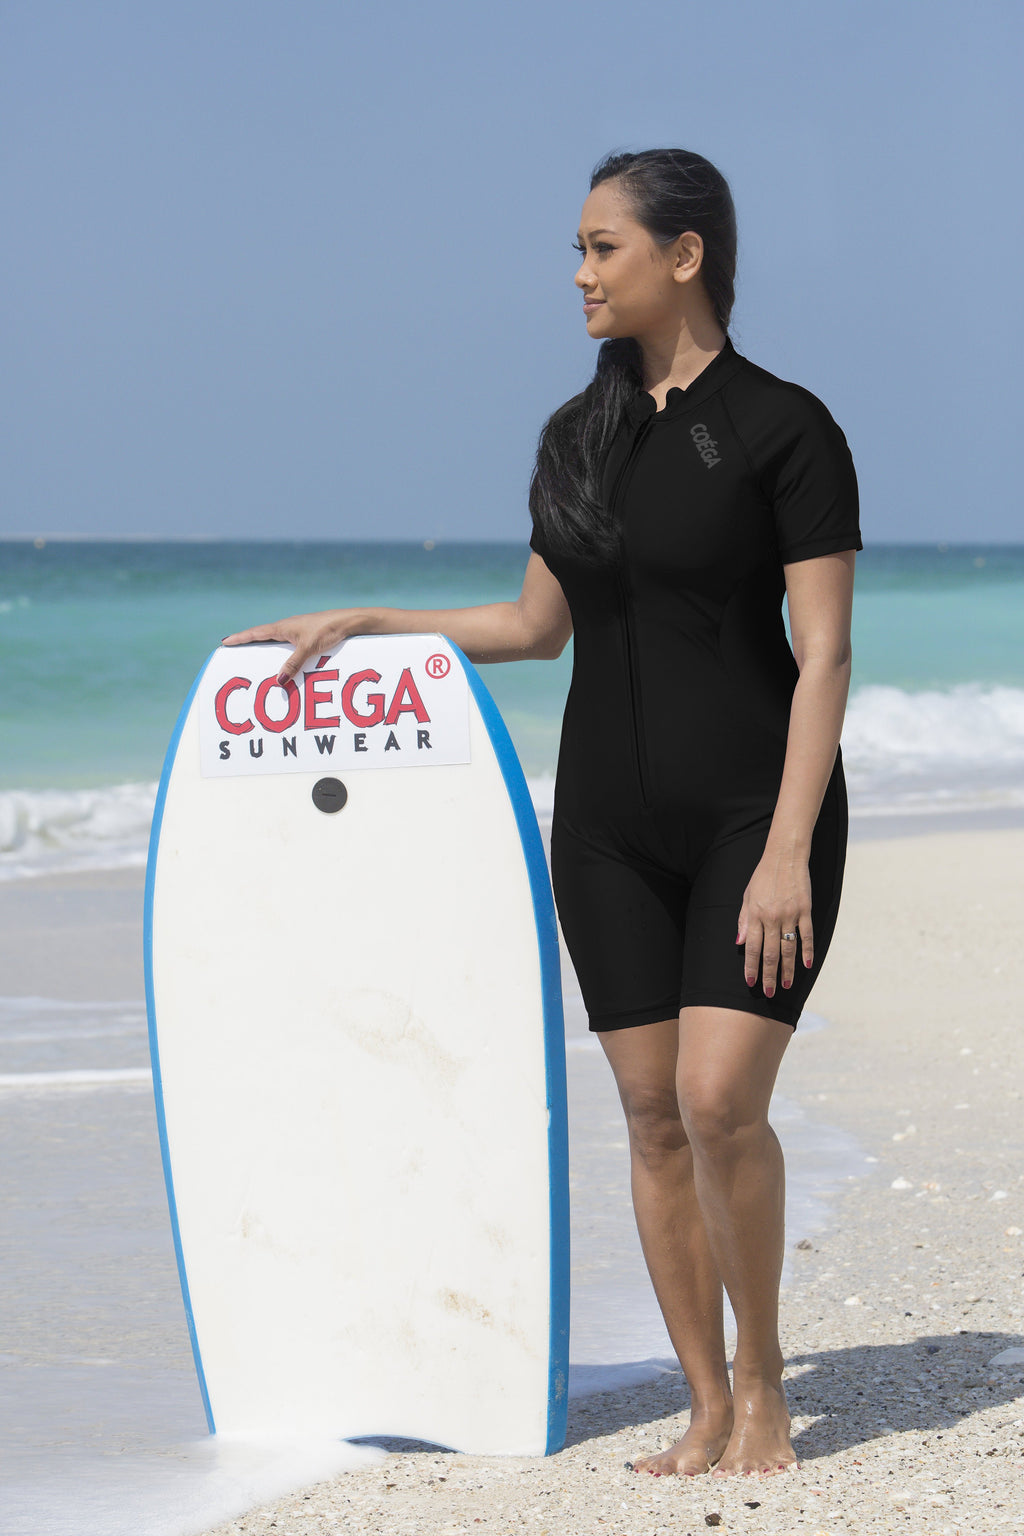 COEGA Ladies SlimKini - Short Sleeve